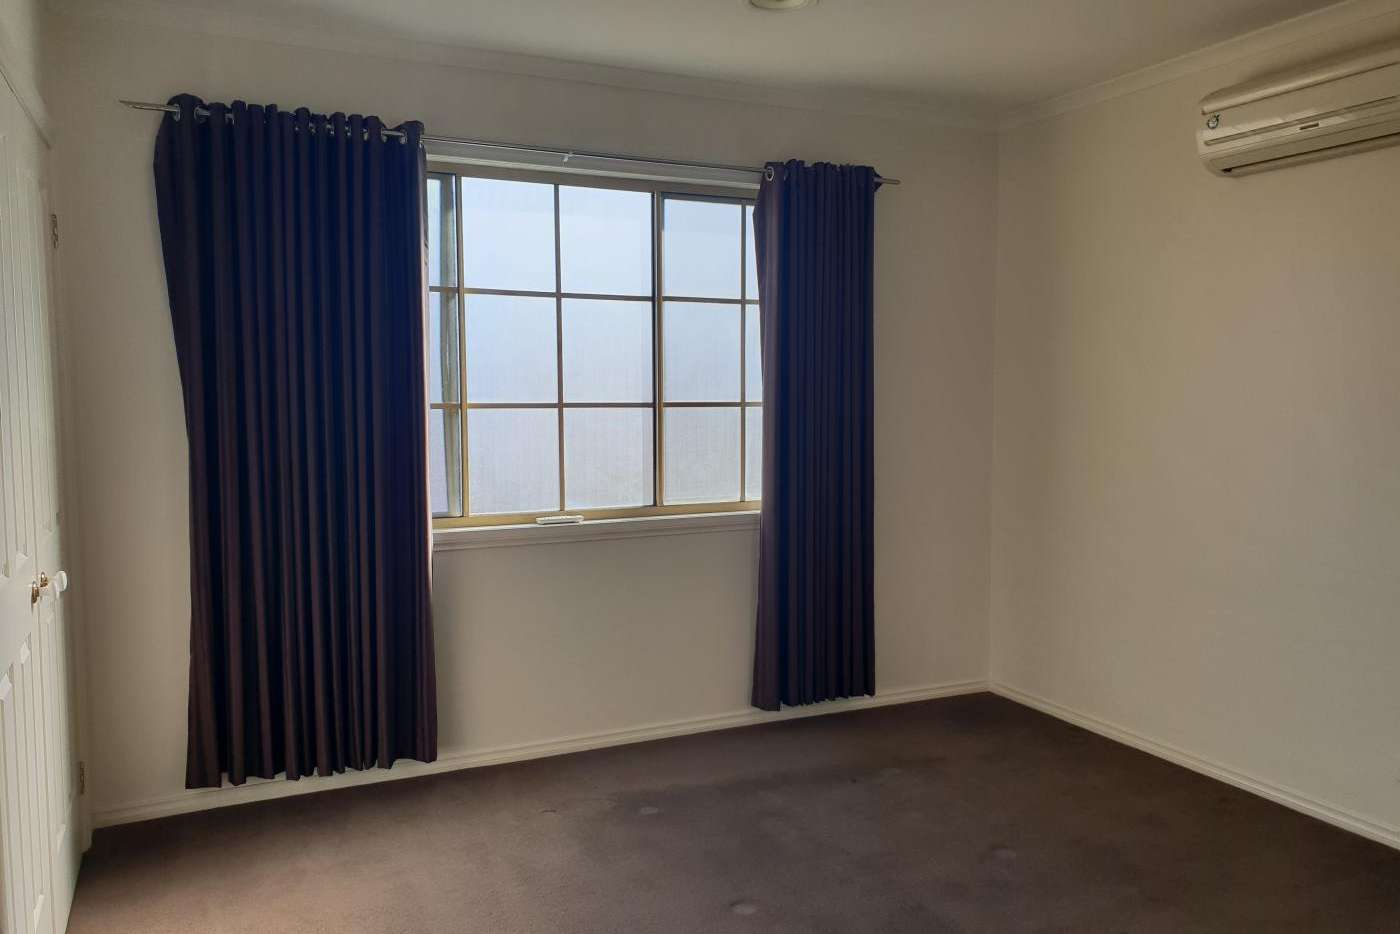 Sixth view of Homely townhouse listing, 2/47 Pickett Street, Reservoir VIC 3073